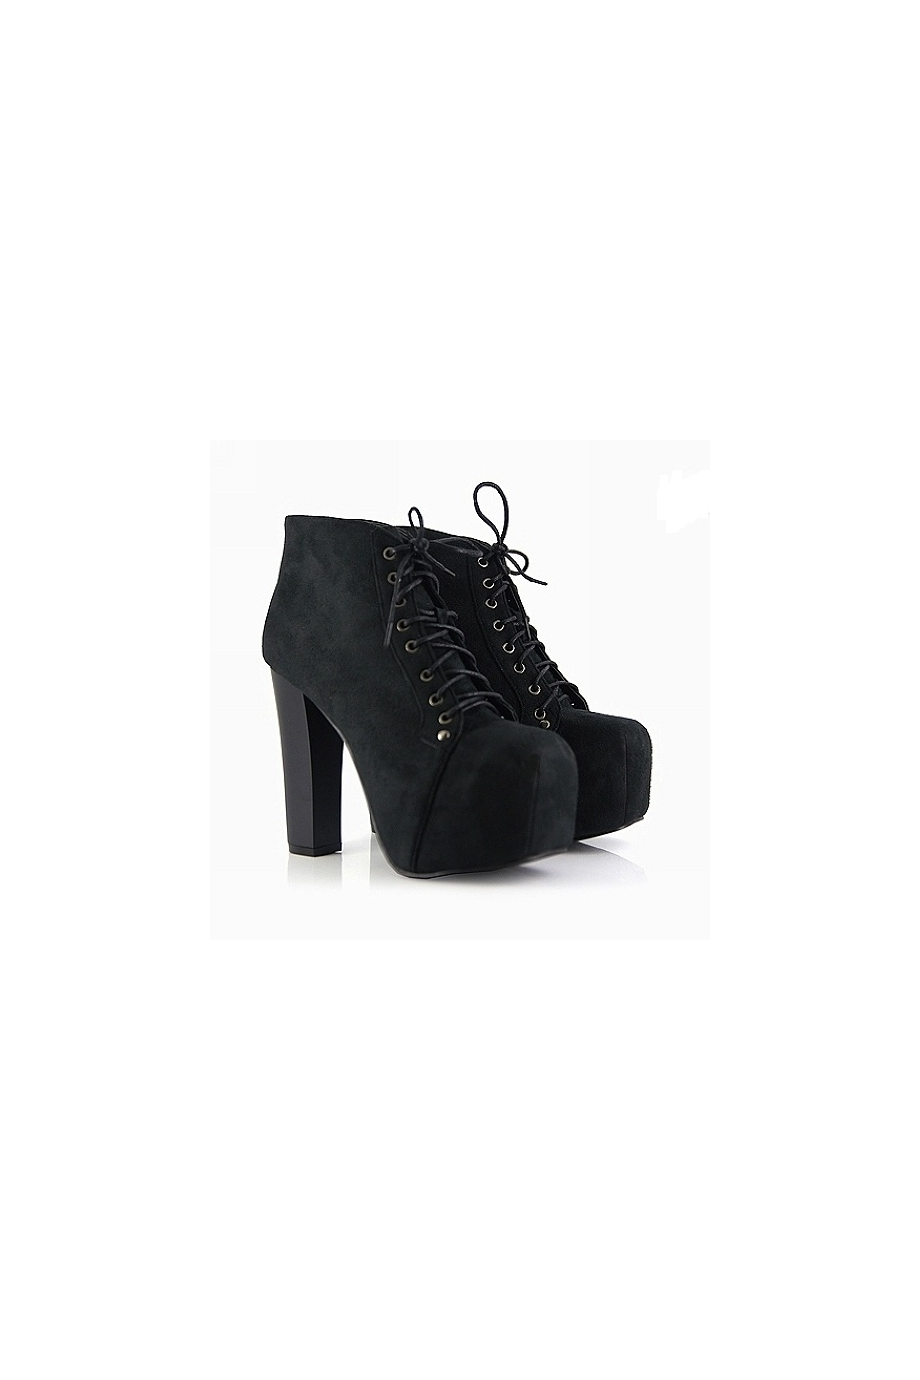 Black Platform Ankle Boots Shop Jeffrey Campbell Lita Inspired ...